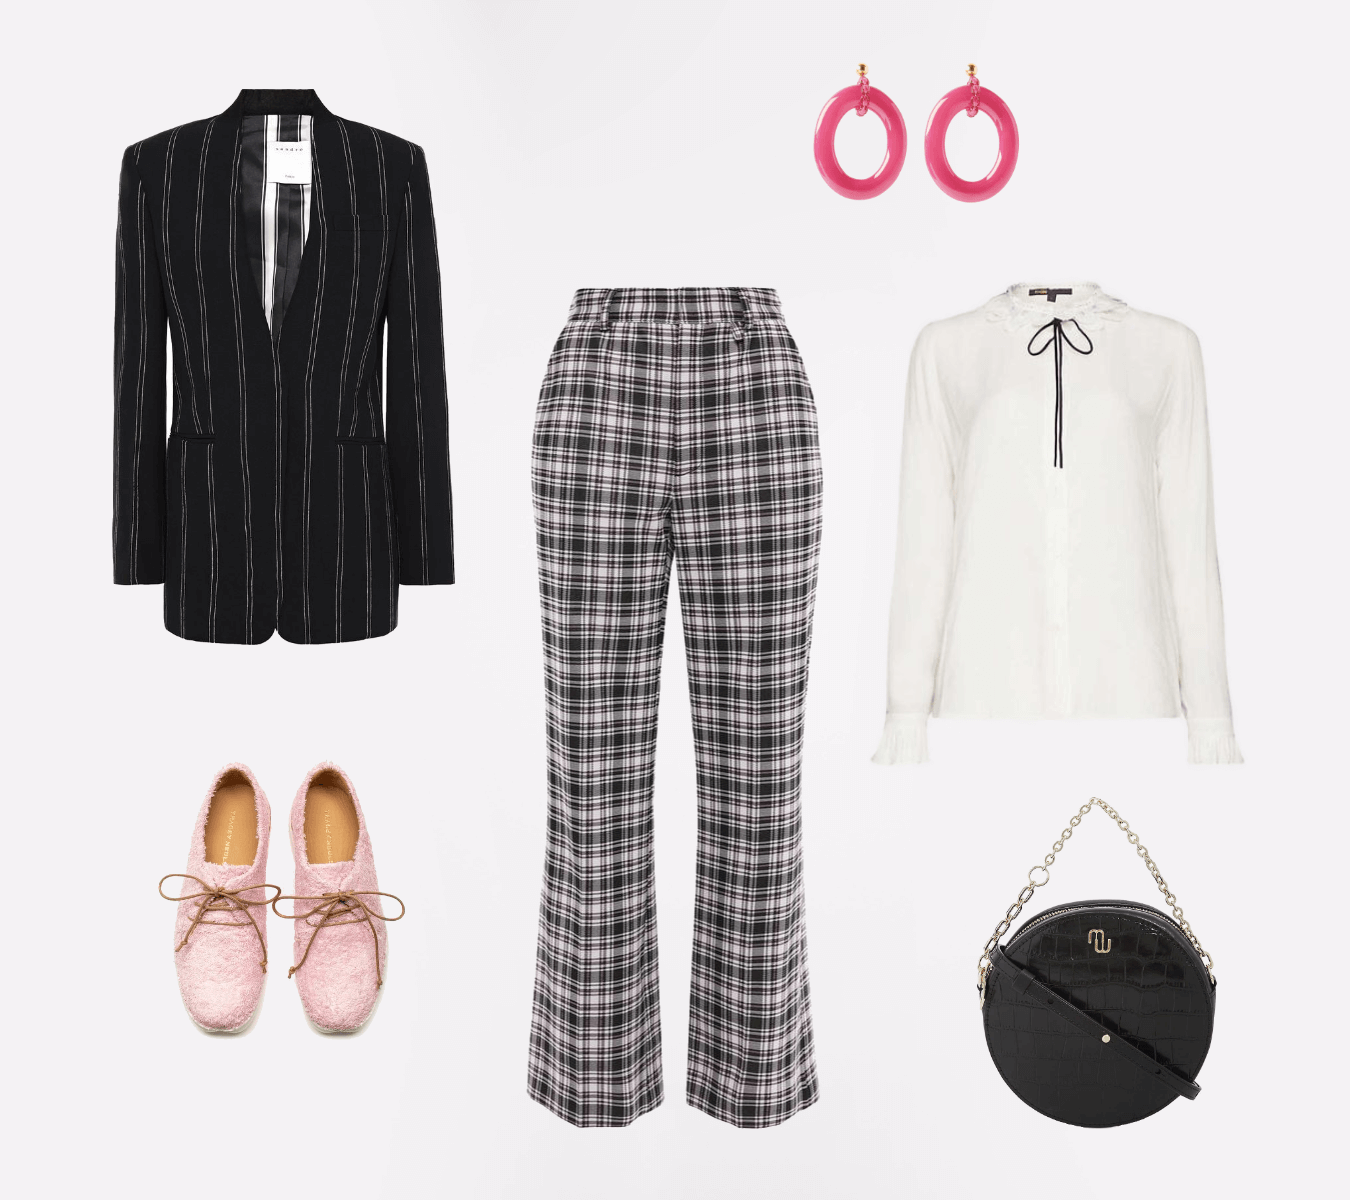 Capsule Wardrobe Personal Styling Session. Clothing Flat Lay Of Classic Style Personality - Monochrome With A Splash Of Pink